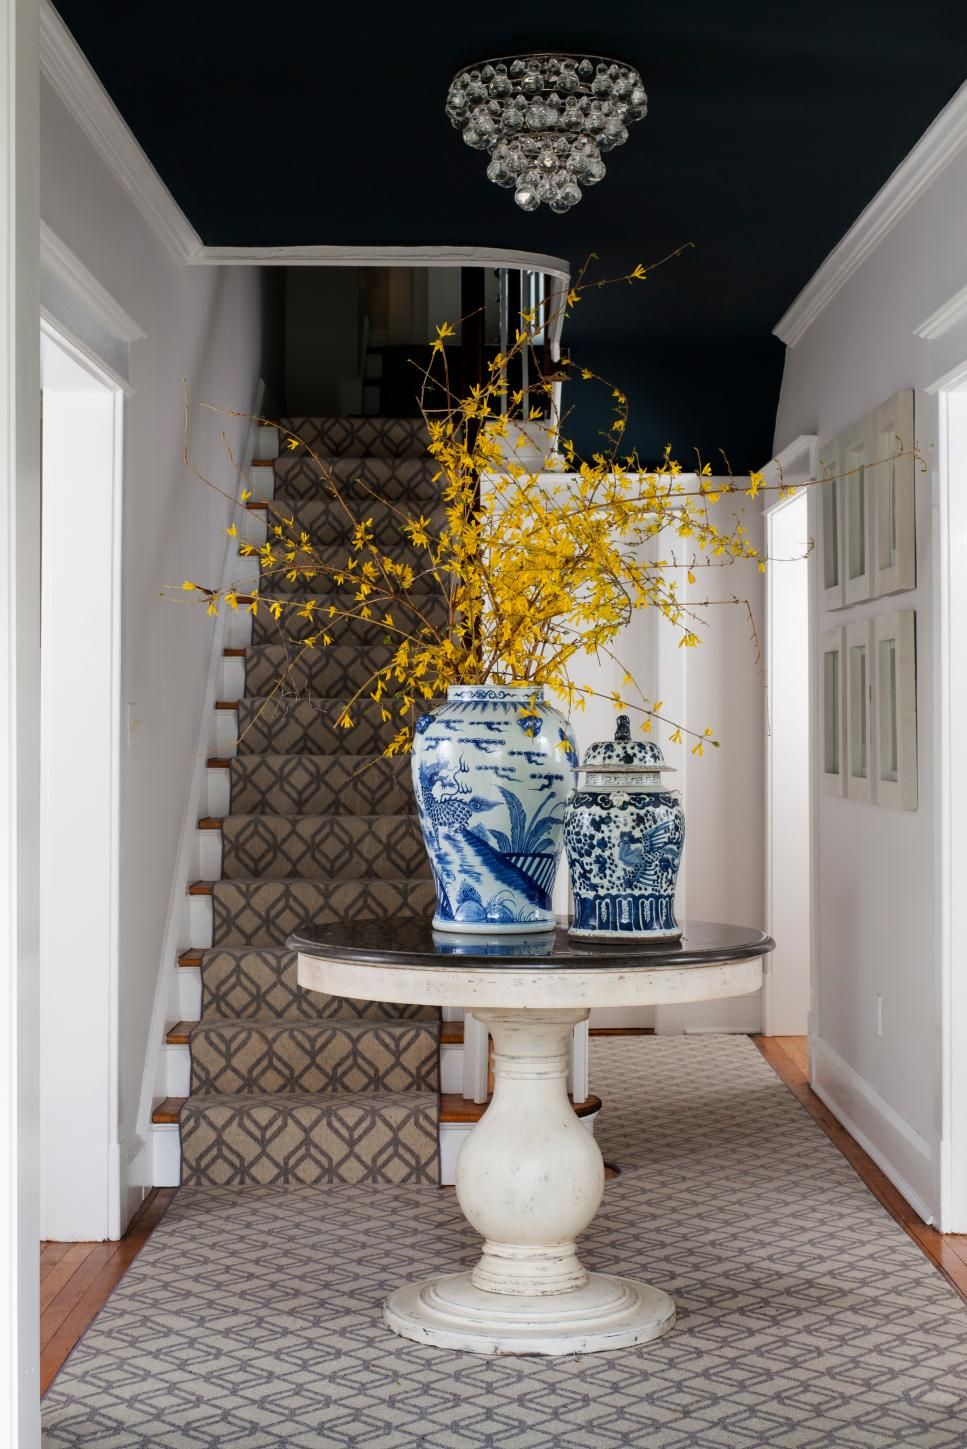 Top Interior Designers Share Their Go To Colors Color Palette And Schemes For Rooms In Your Home Hgtv